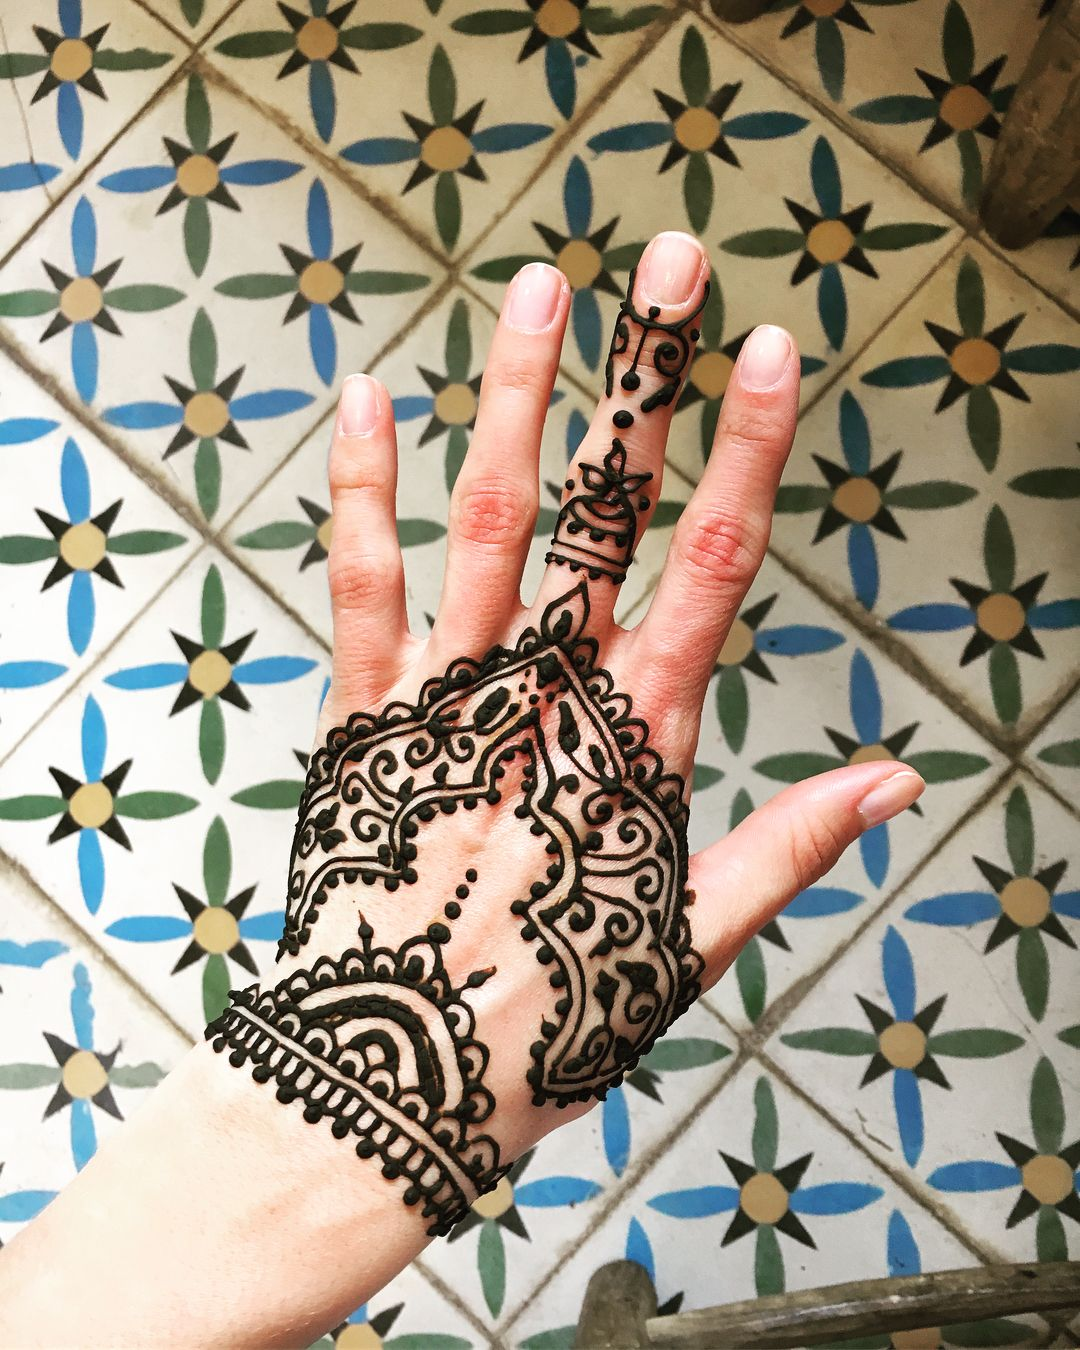 Since Today Is Throwbackthursday I Want To Talk About This Henna